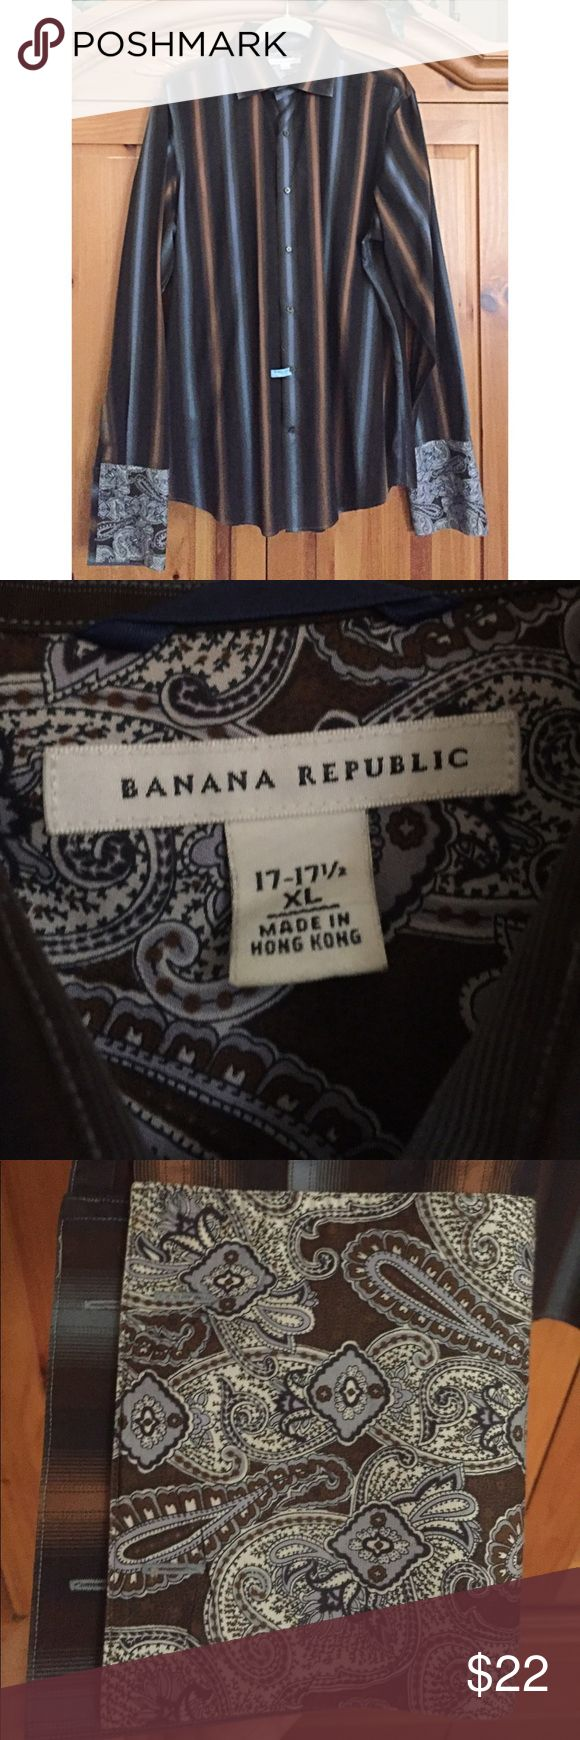 Banana Republic French cuff dress shirt Beautiful shirt in excellent condition and freshly dry-cleaned. Features French cuffs with contrasting material, can be worn with cufflinks or rolled up for a more casual look. Banana Republic Shirts Dress Shirts